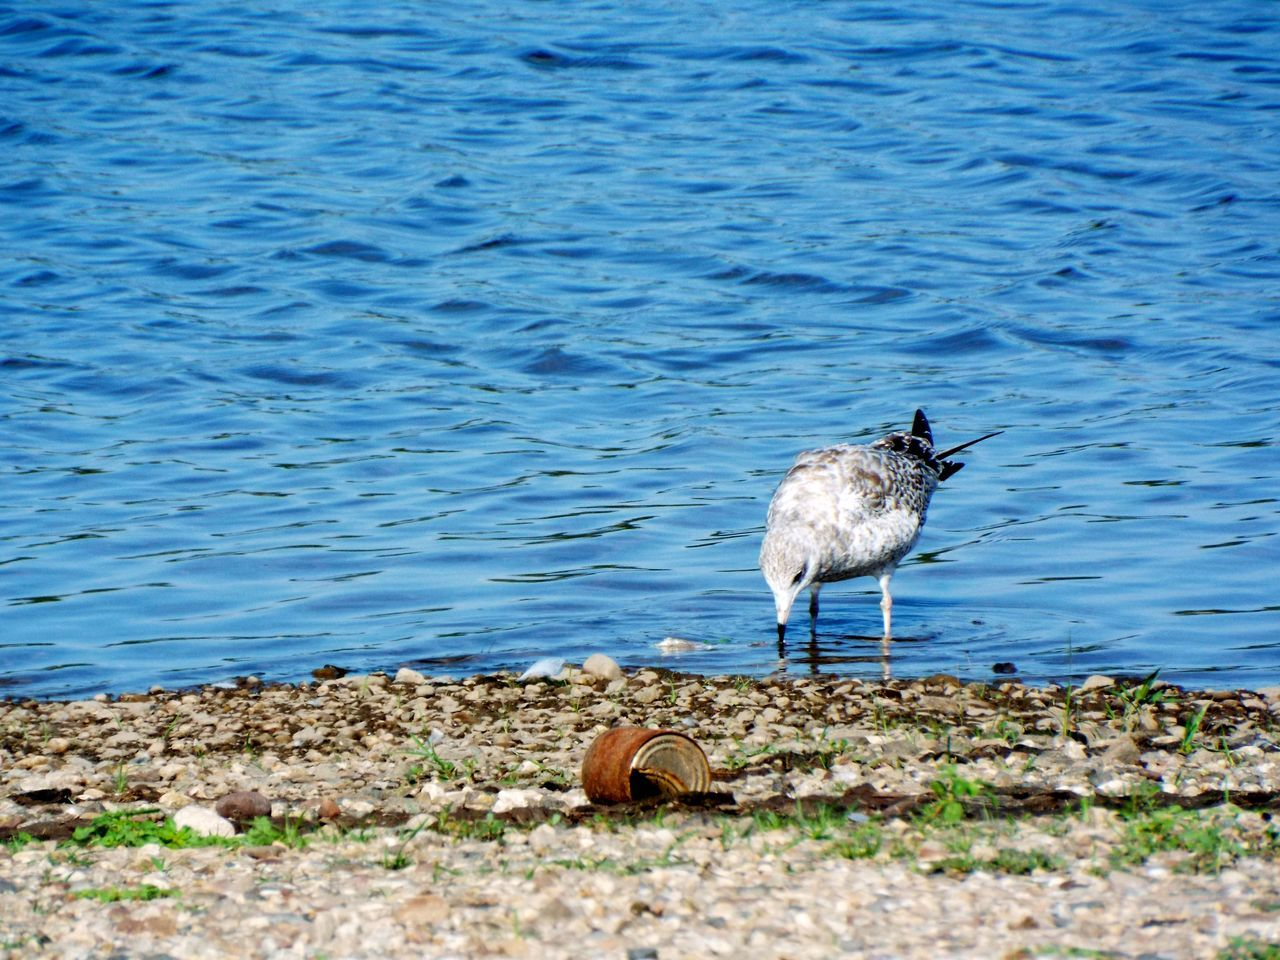 Beauty In Nature Beauty In Nature Bird And Water Bird Photography Bird Watching Blue Water Blue Waters Cerulean Cerulean Blue Connecticut River Cove Gull Nature Nature Photography No People Outdoors Riverside Sea Bird Sea Gull Seagull Serenity Tranquility Waterside Wethersfield Cove Wildlife Wildlife & Nature